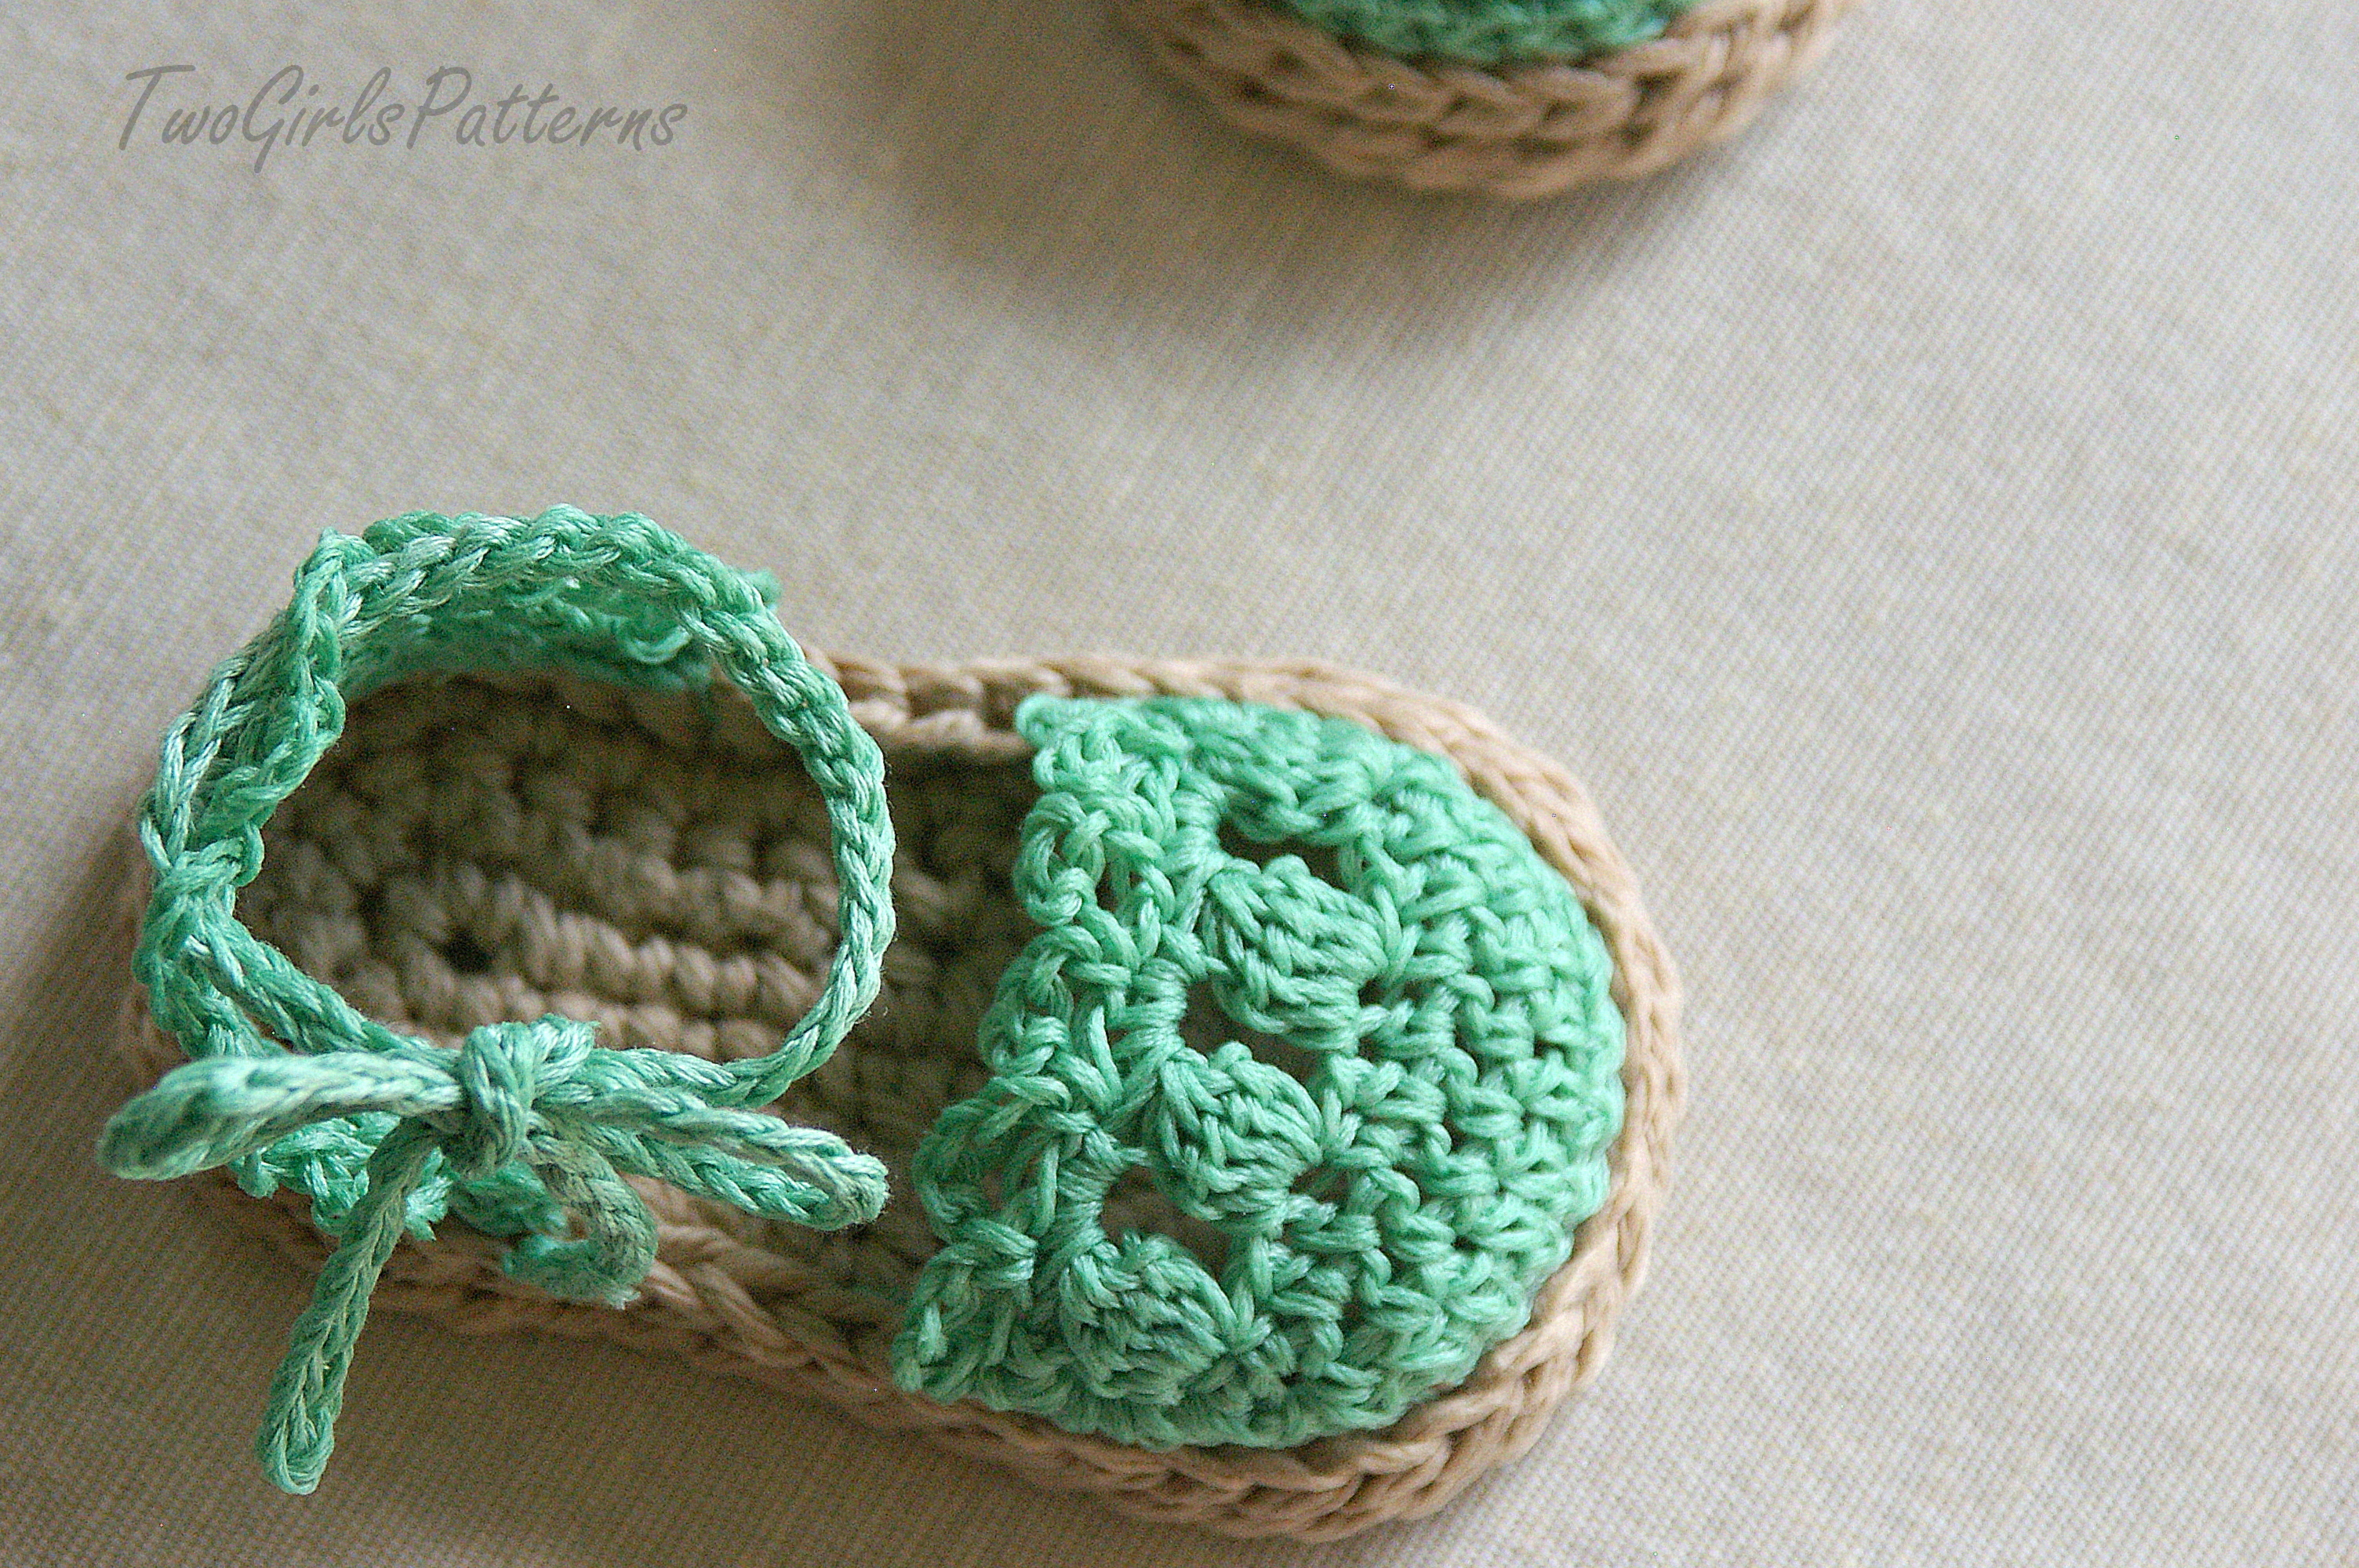 Crochet Pattern For Baby Espadrille Sandals - Crochet Pattern 119 on ...